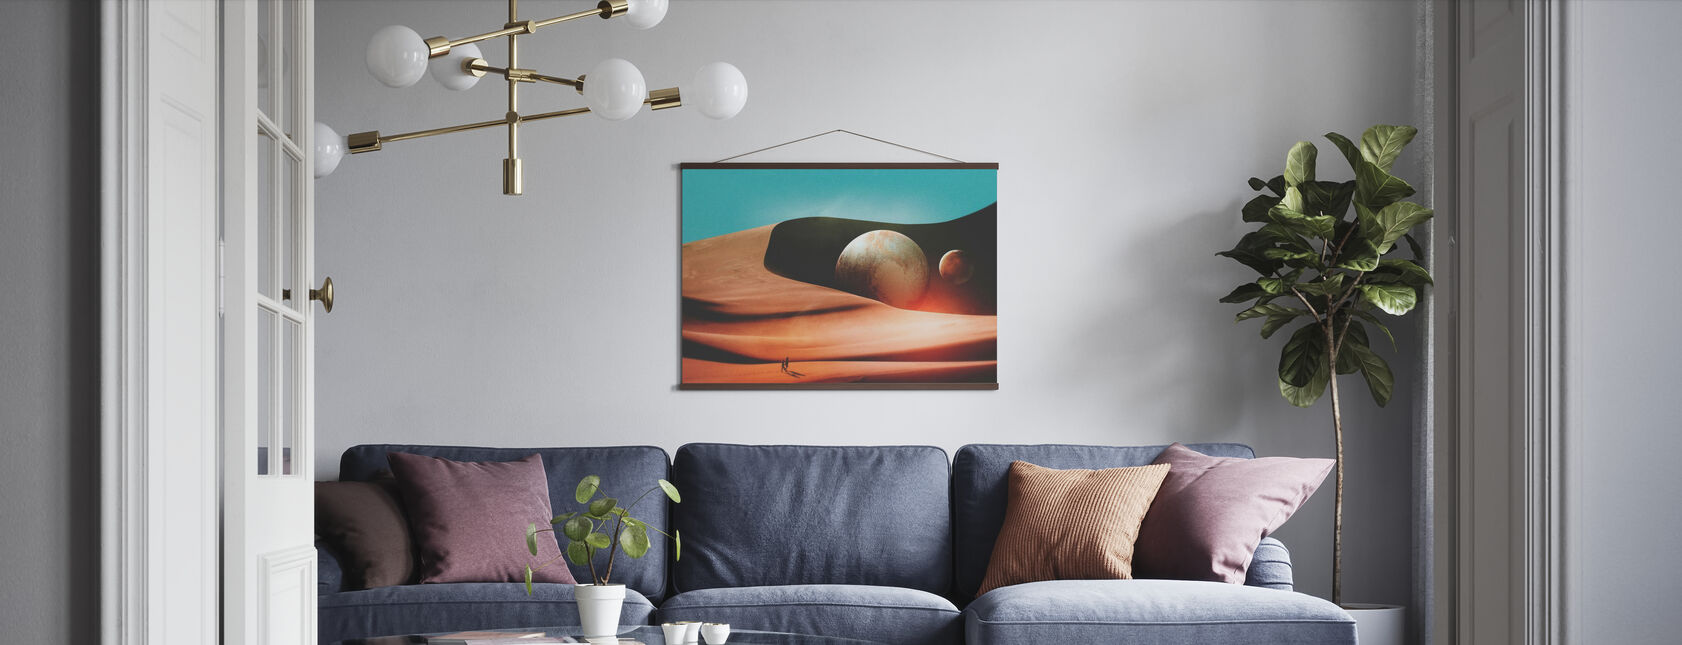 The Only Moment We Were Alone - Poster - Living Room